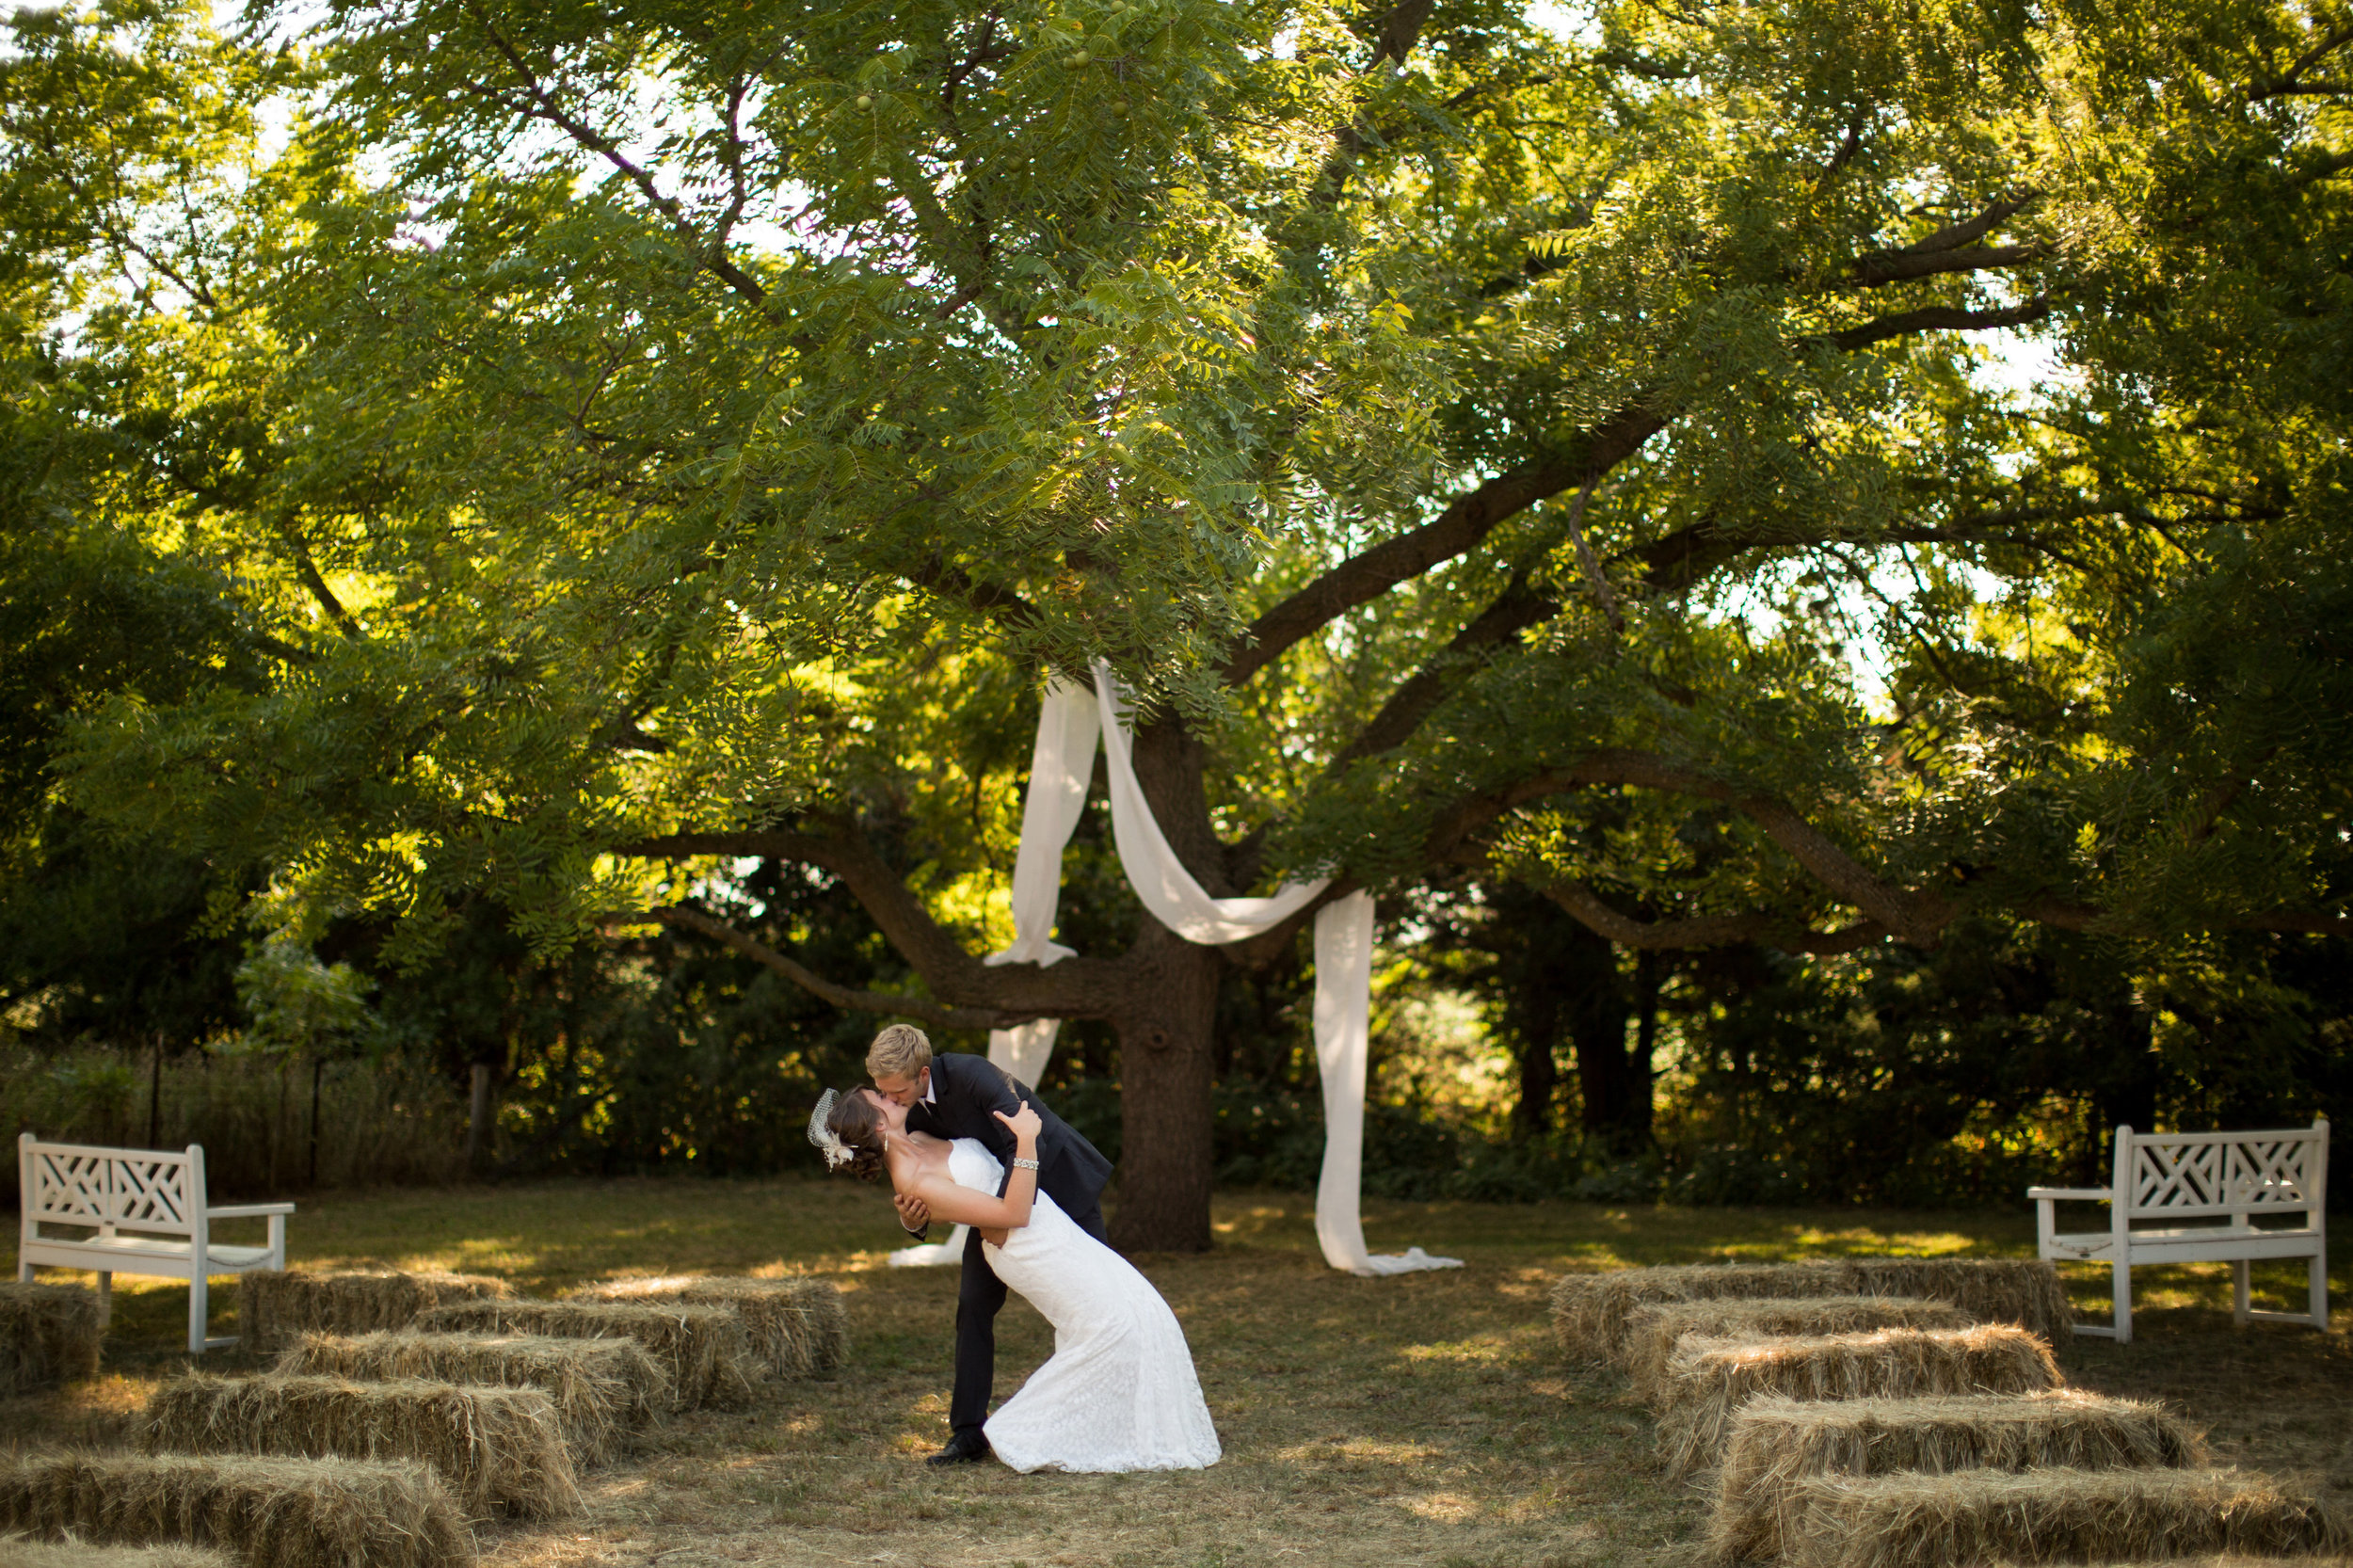 iowa-venue-fort-dodge-first-presbyterian-church-reception-rustic-country-lace-yellow-billy-balls-teal-vintage-hay-bales-fabric-tree-outdoor-ceremony